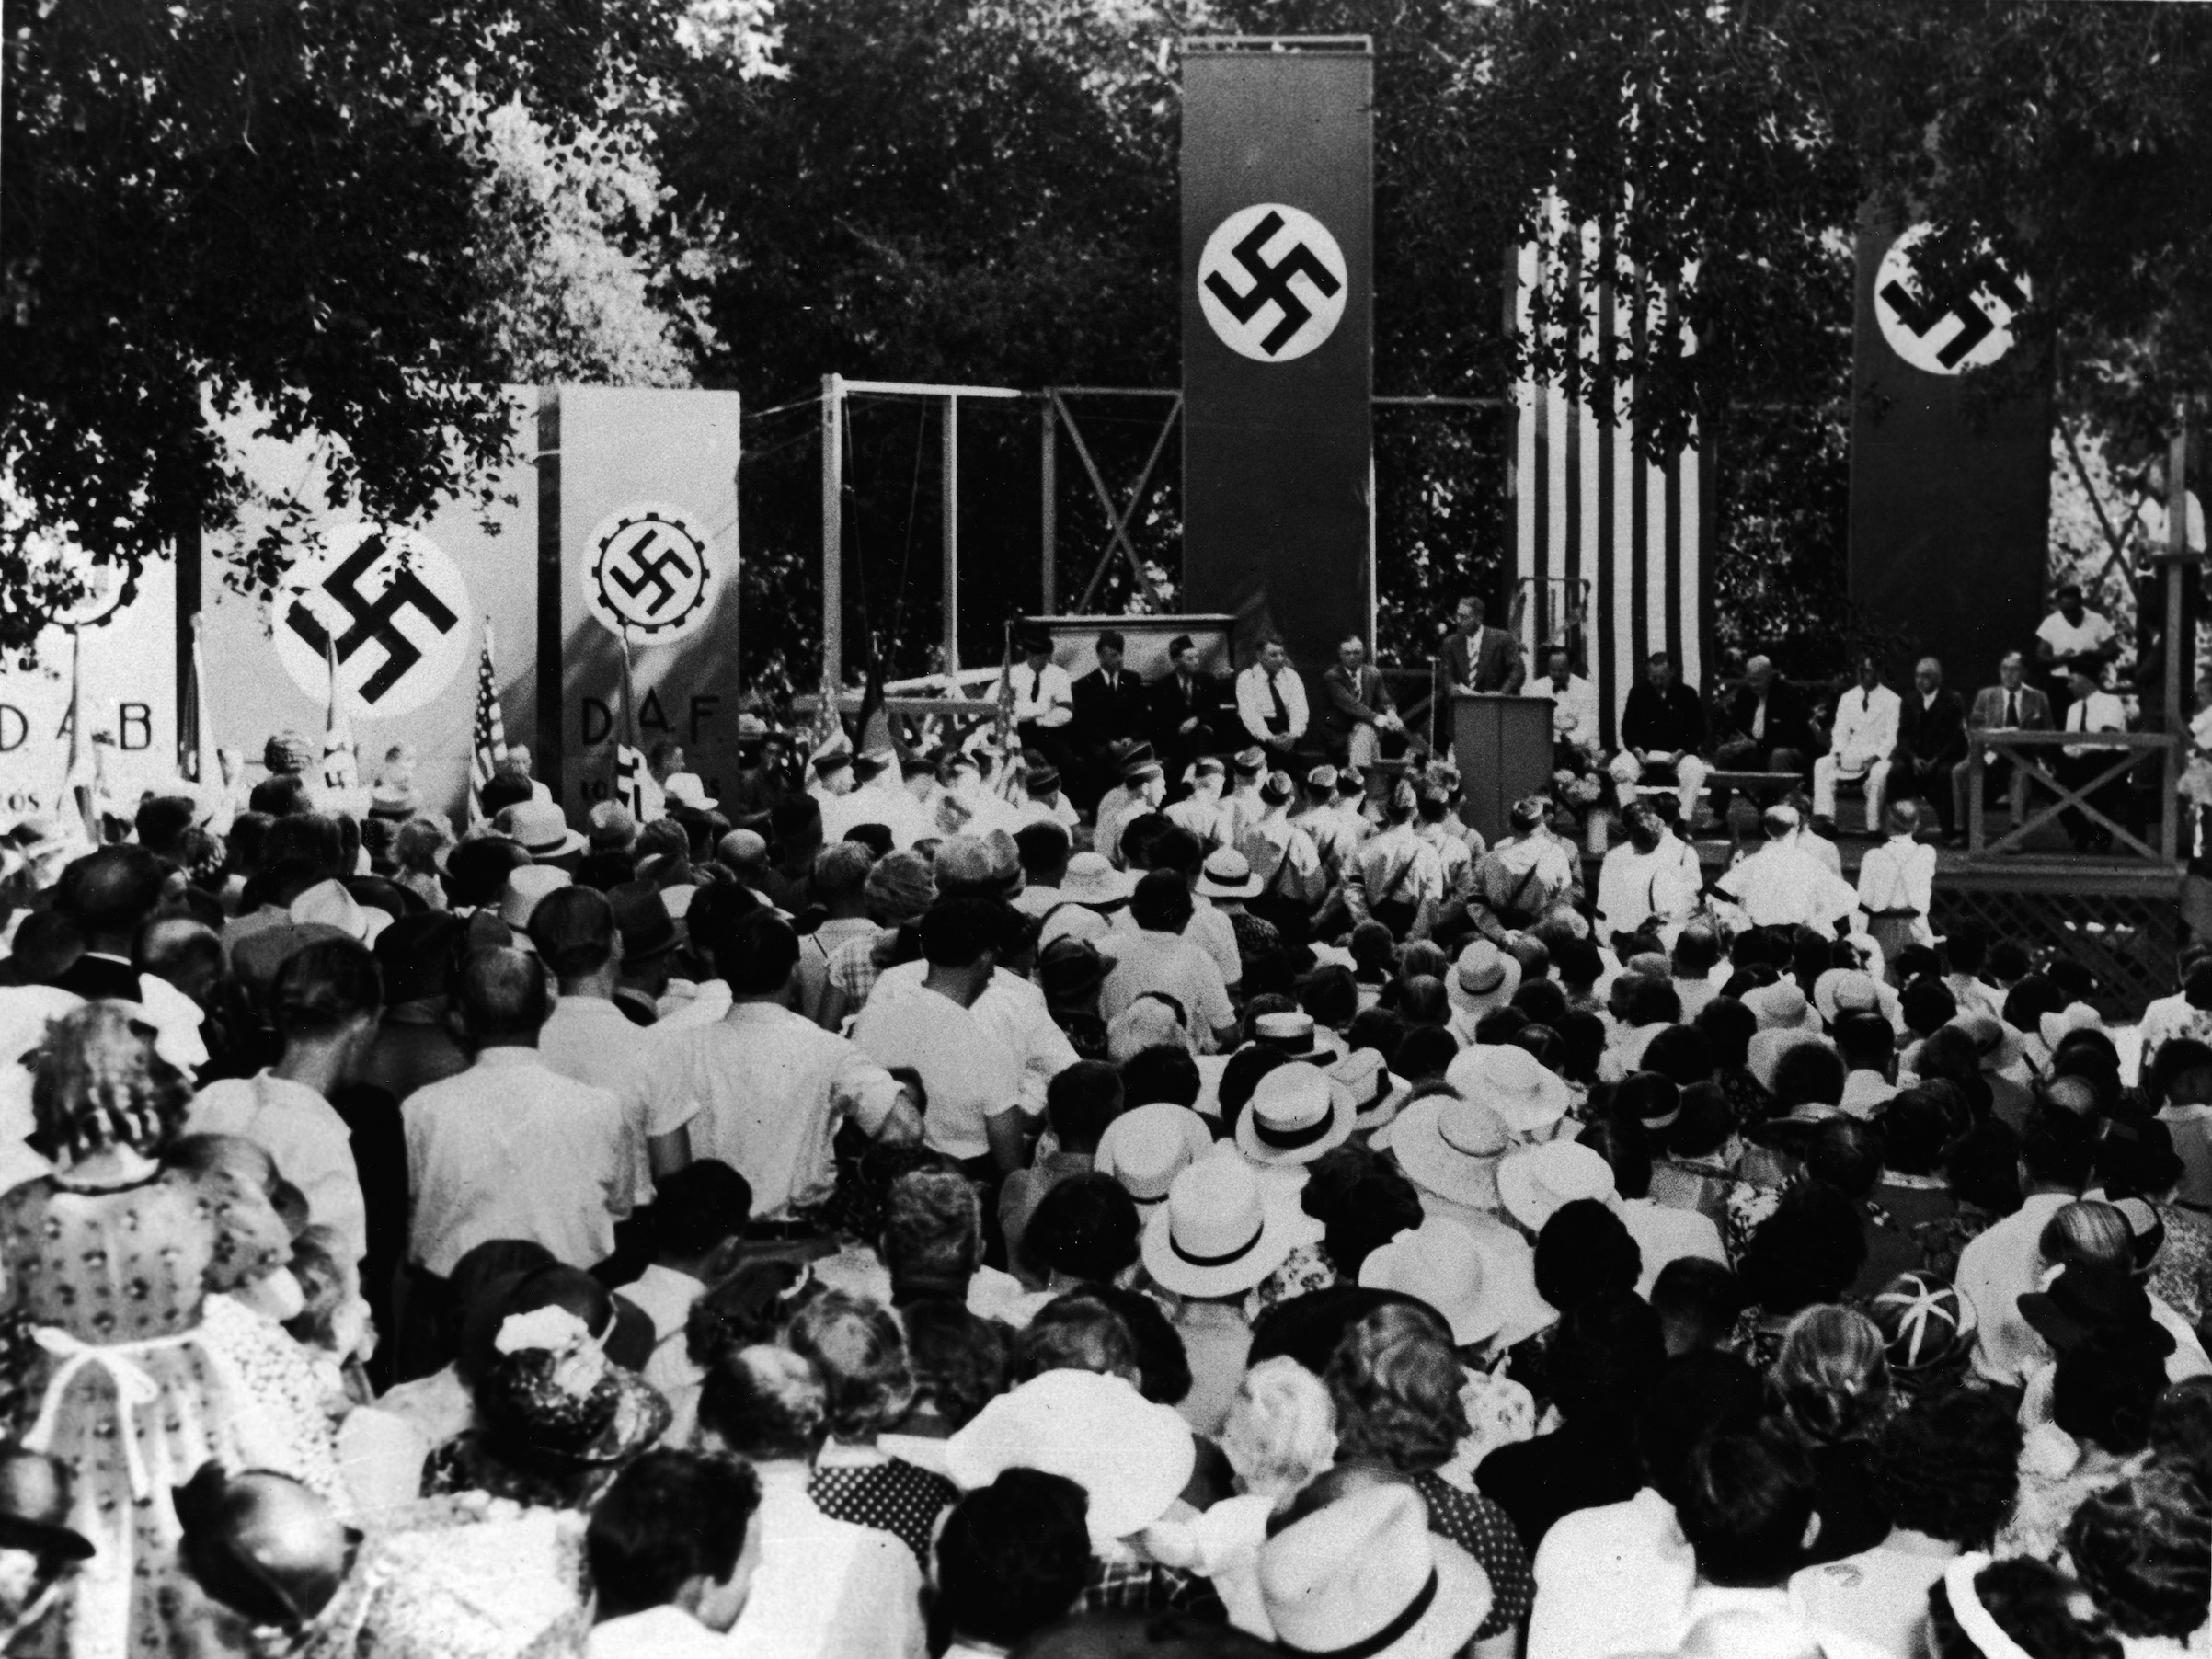 At a pro-Nazi gathering in Los Angeles in 1937, German-Americans listen to speakers who deny that American Nazi representatives were engaged in subversive activities against the United States.